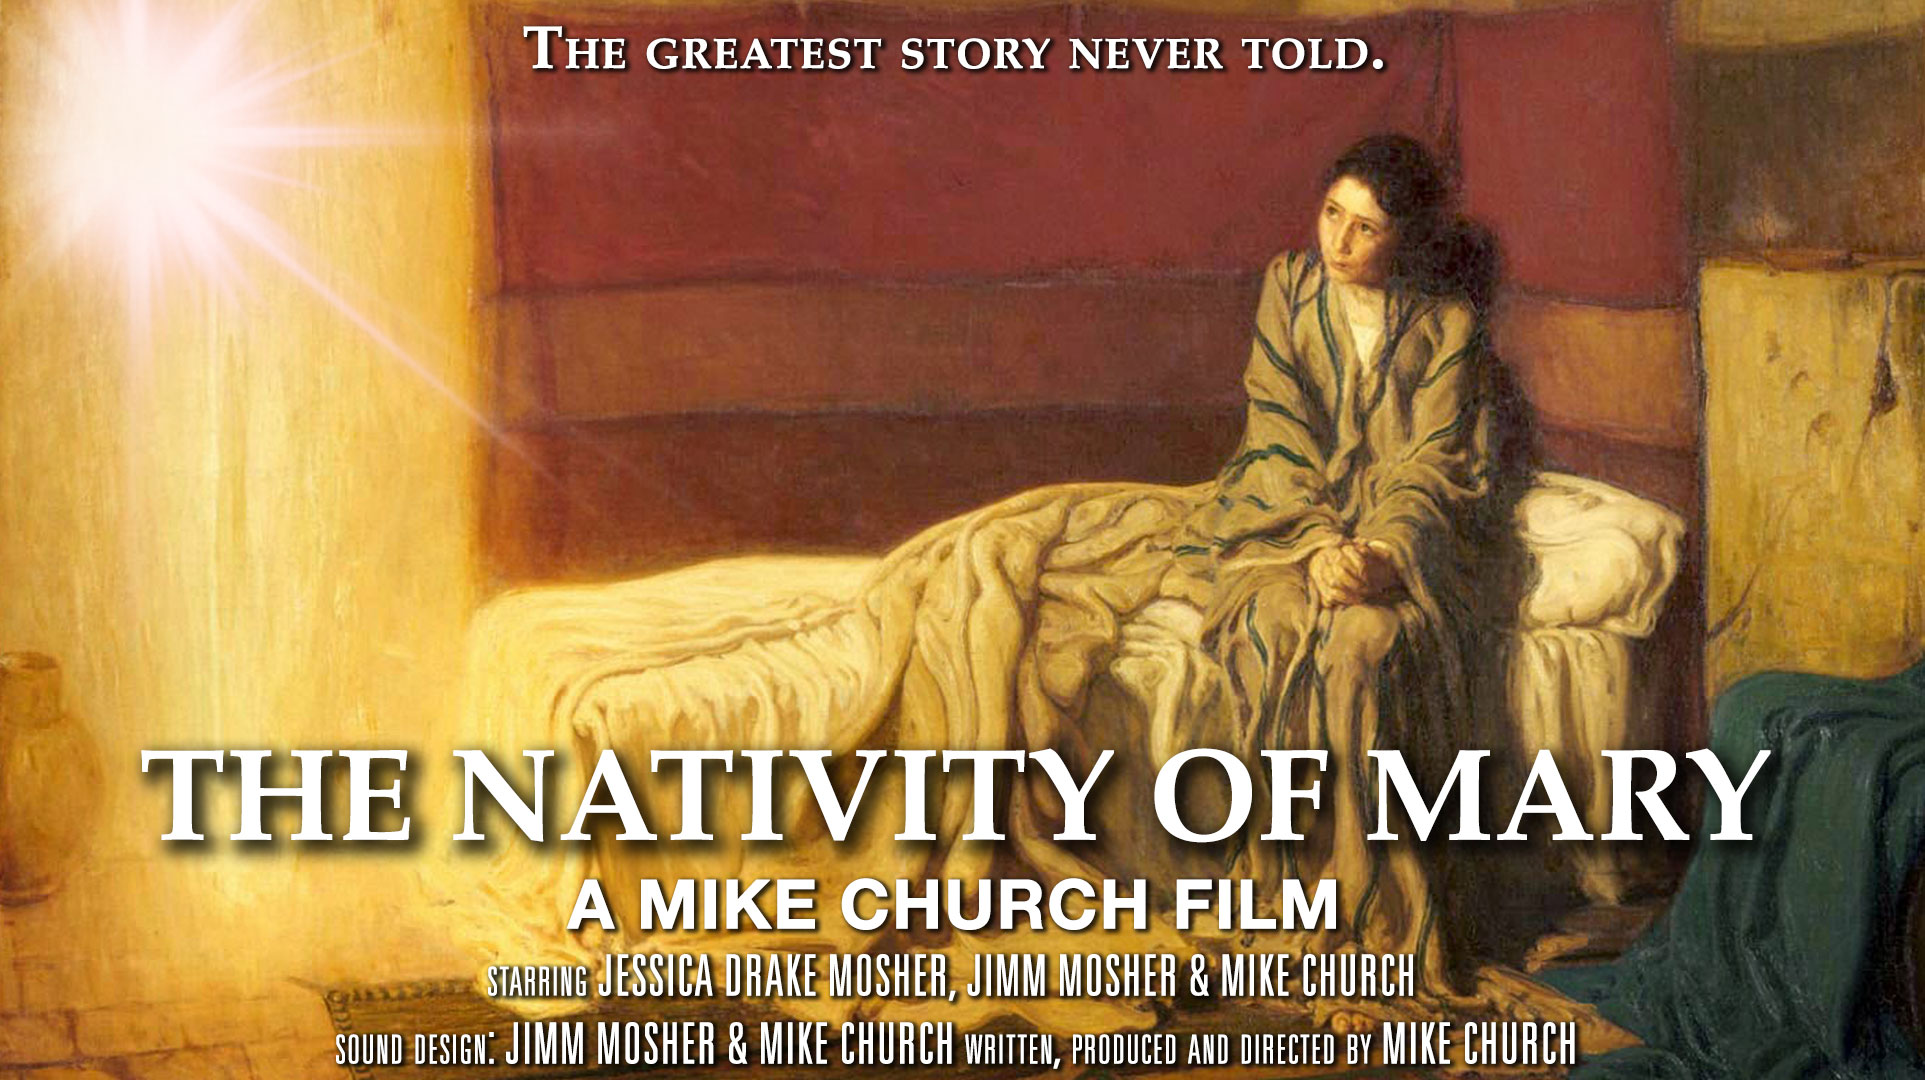 Mike Church Presents: The Nativity Of Mary, An Original Founding Father Films Production